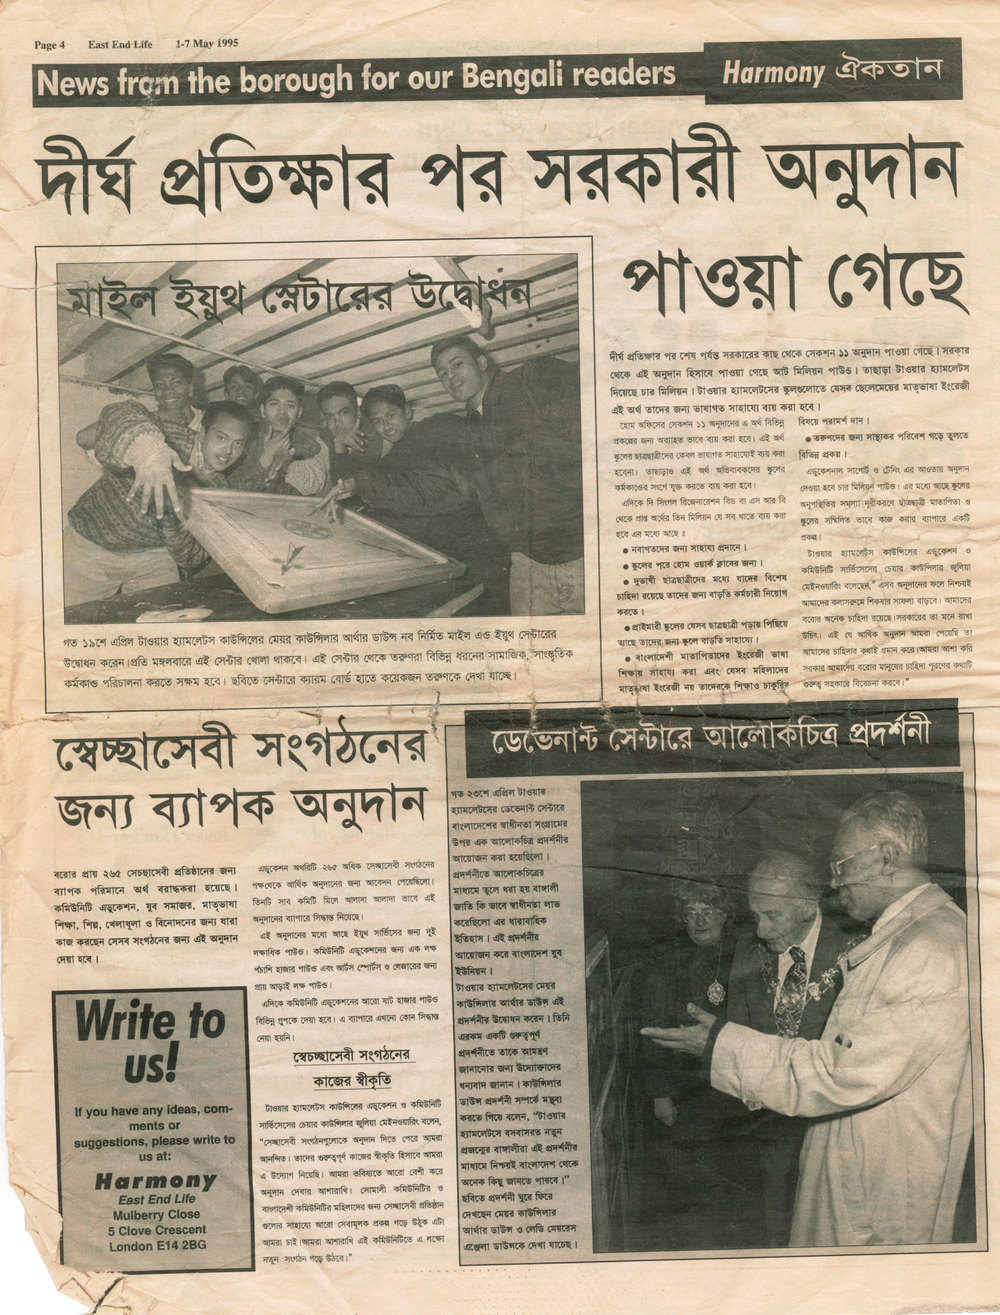 MCP-Article-1995-.jpg